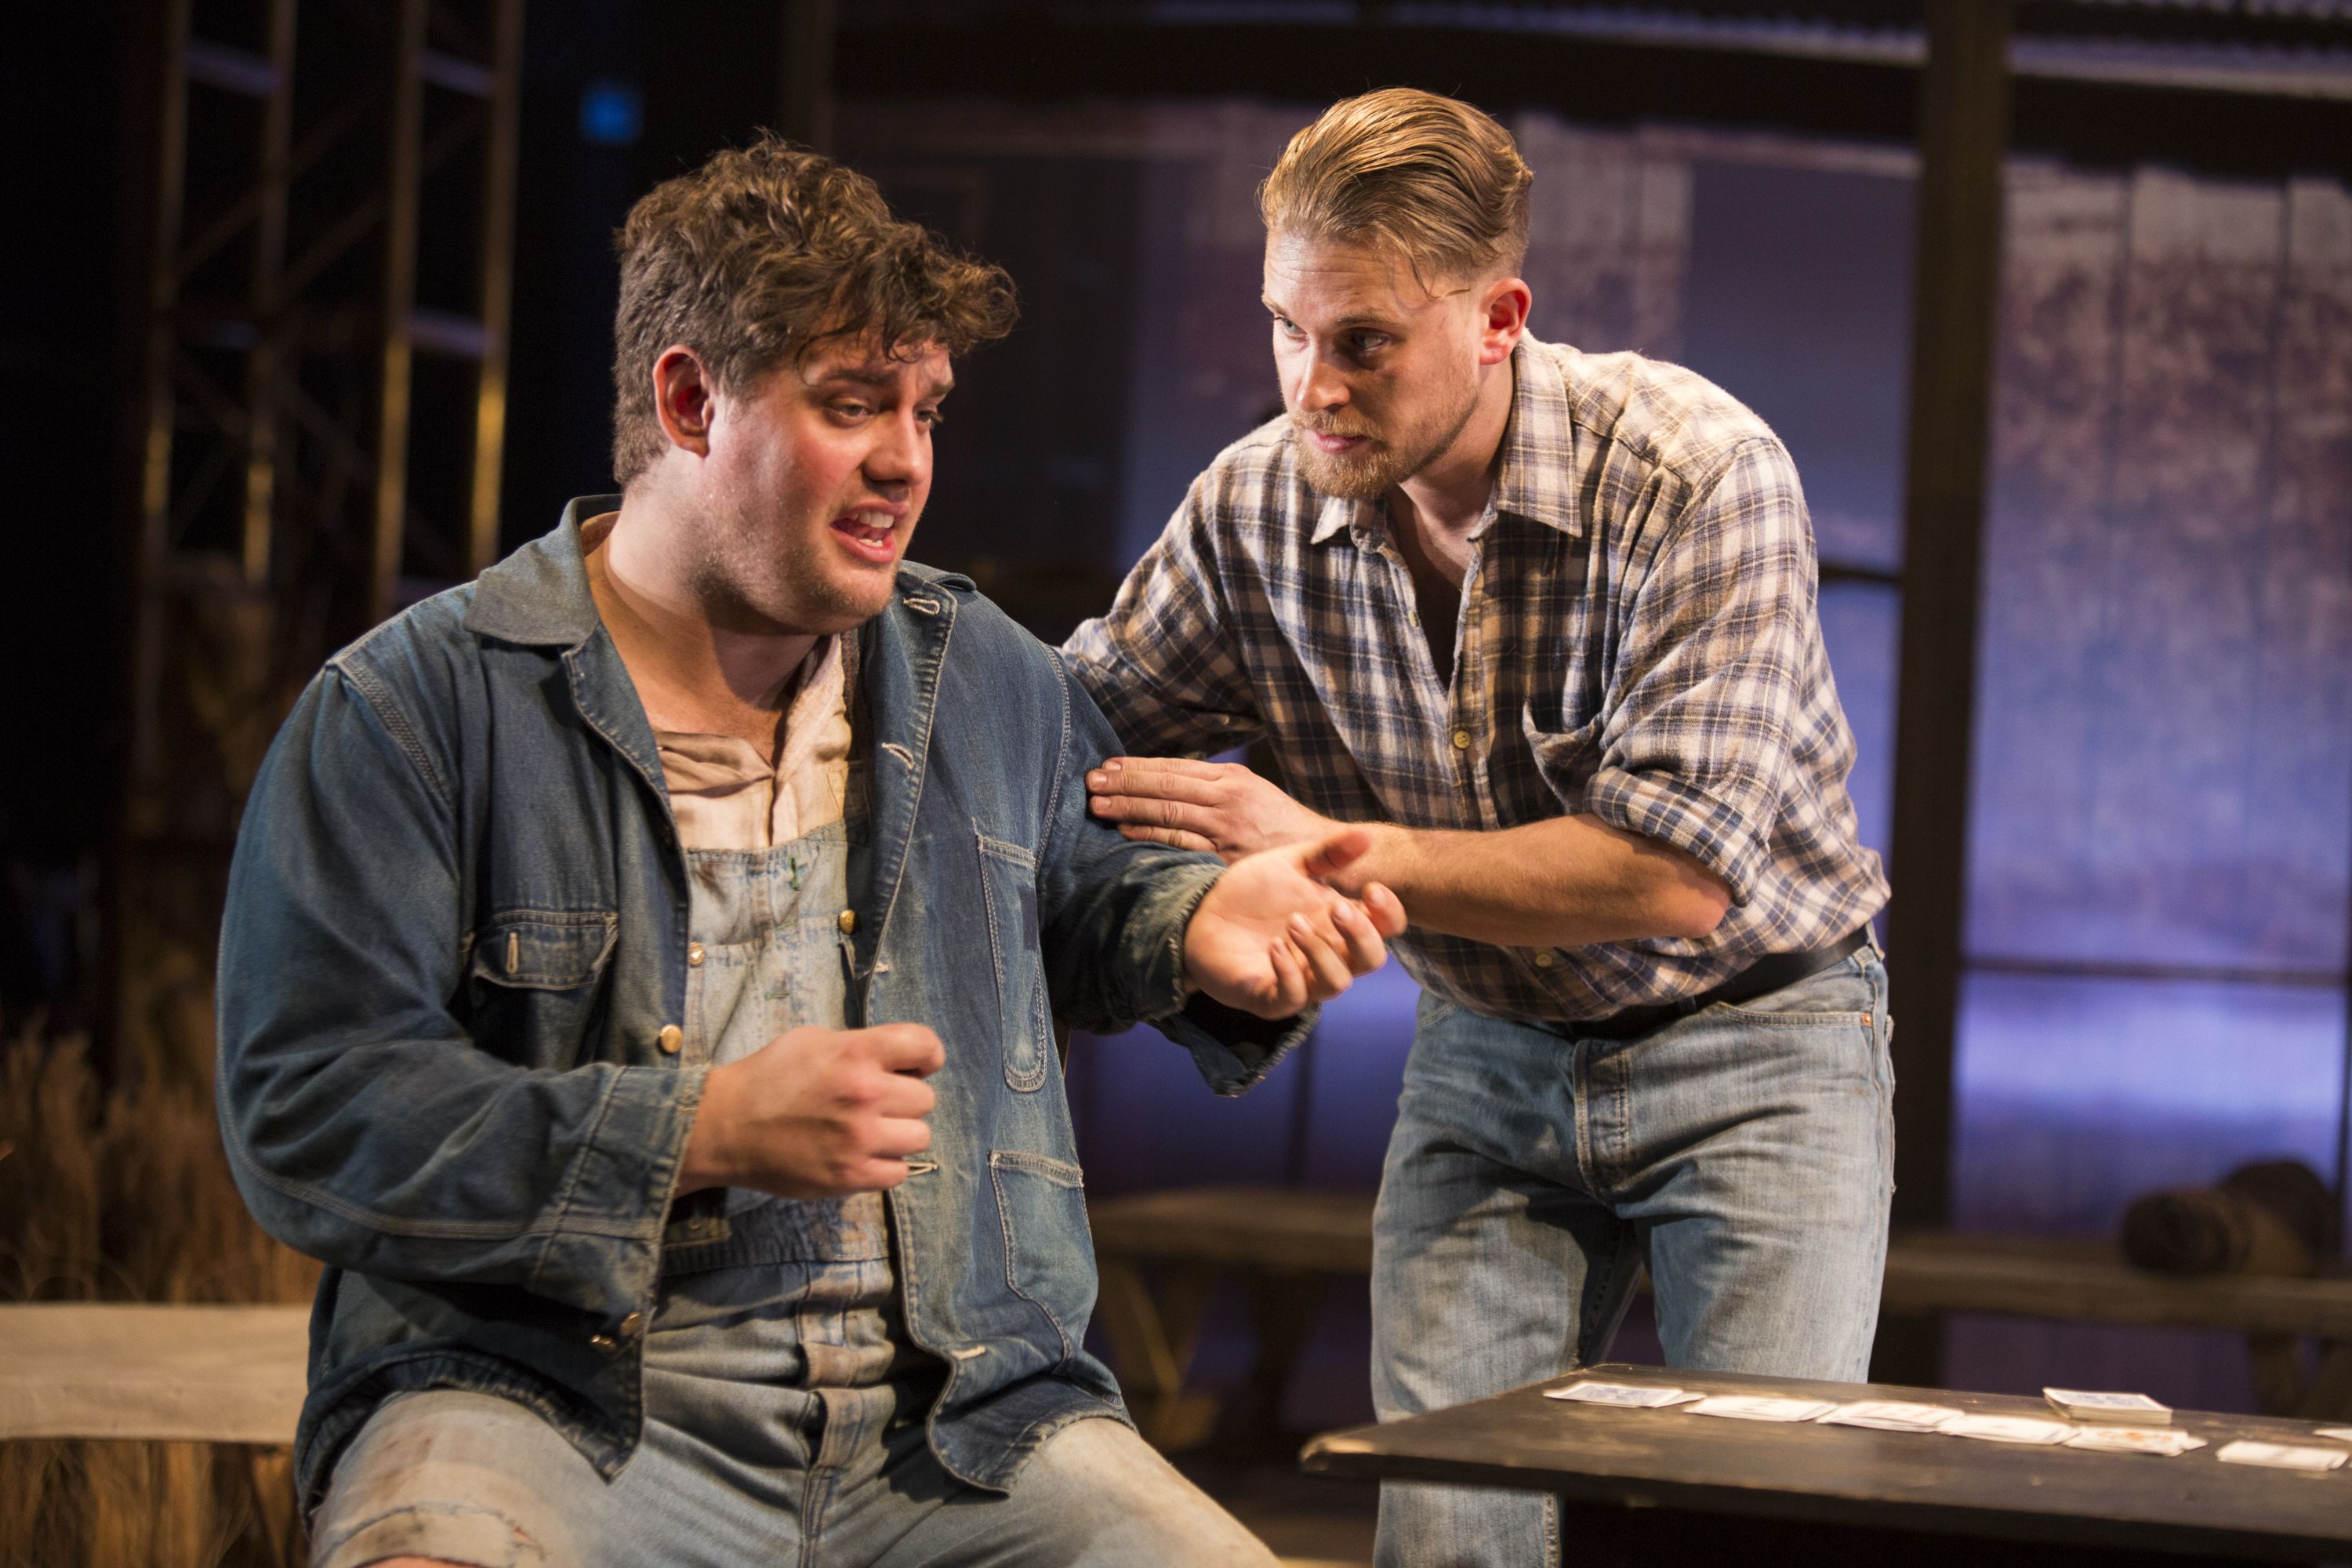 kristian phillips lennie and william rodell george in of mice kristian phillips lennie and william rodell george in of mice and men